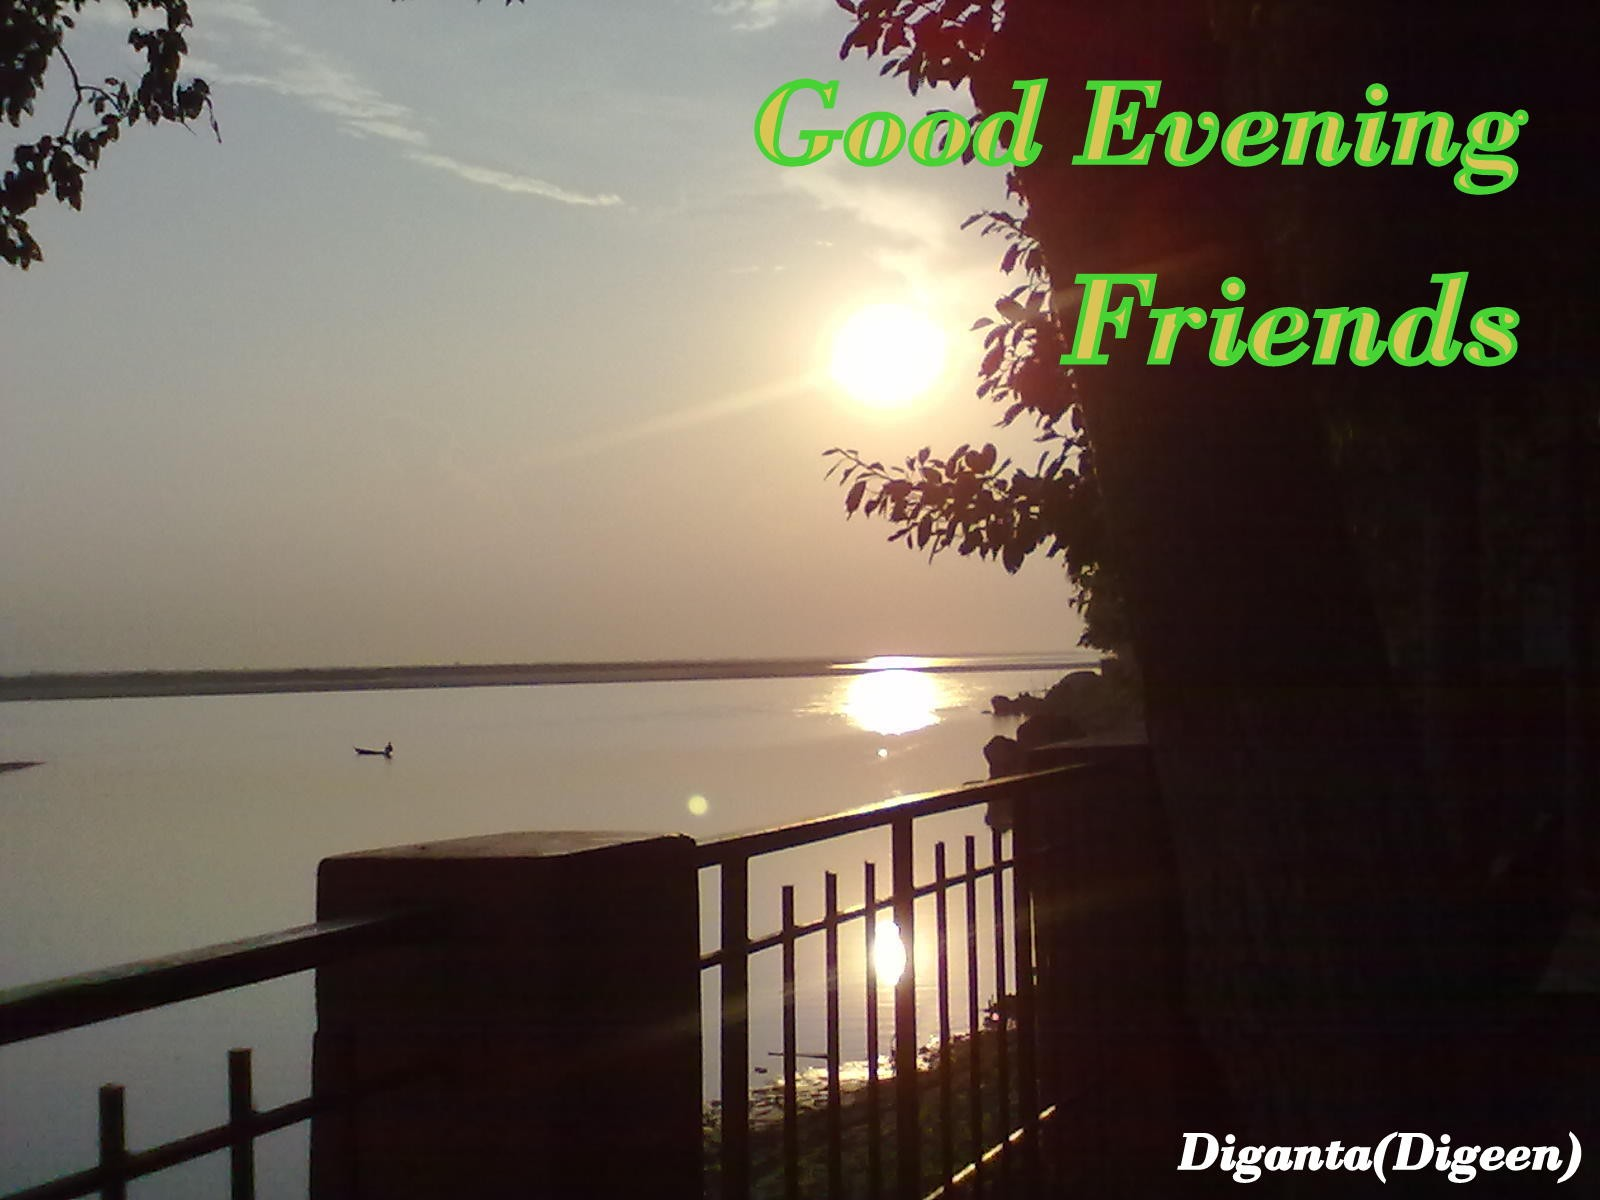 Beautiful Good Evening Friends Image